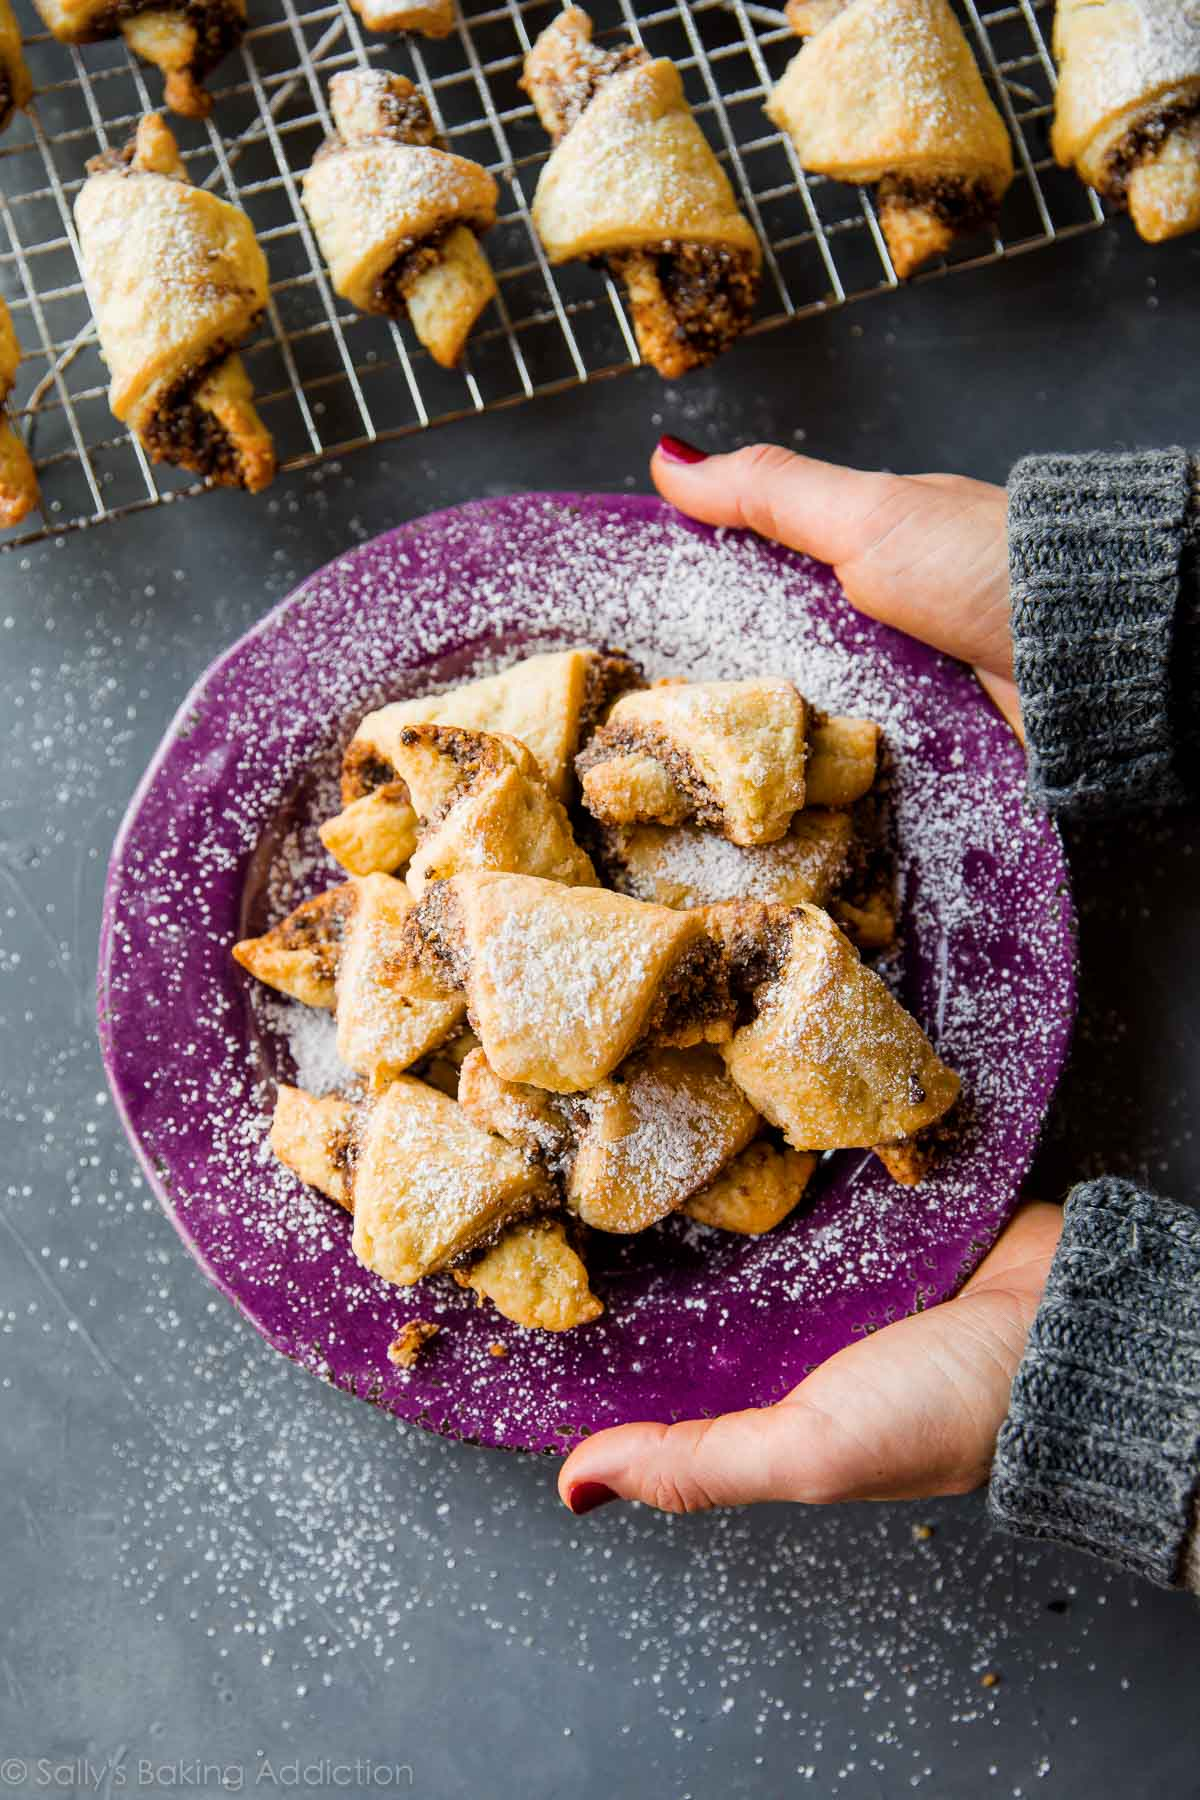 Buttery, flaky rugelach with a light and crisp pastry dough and sweet cinnamon filling! Recipe on sallysbakingaddiction.com